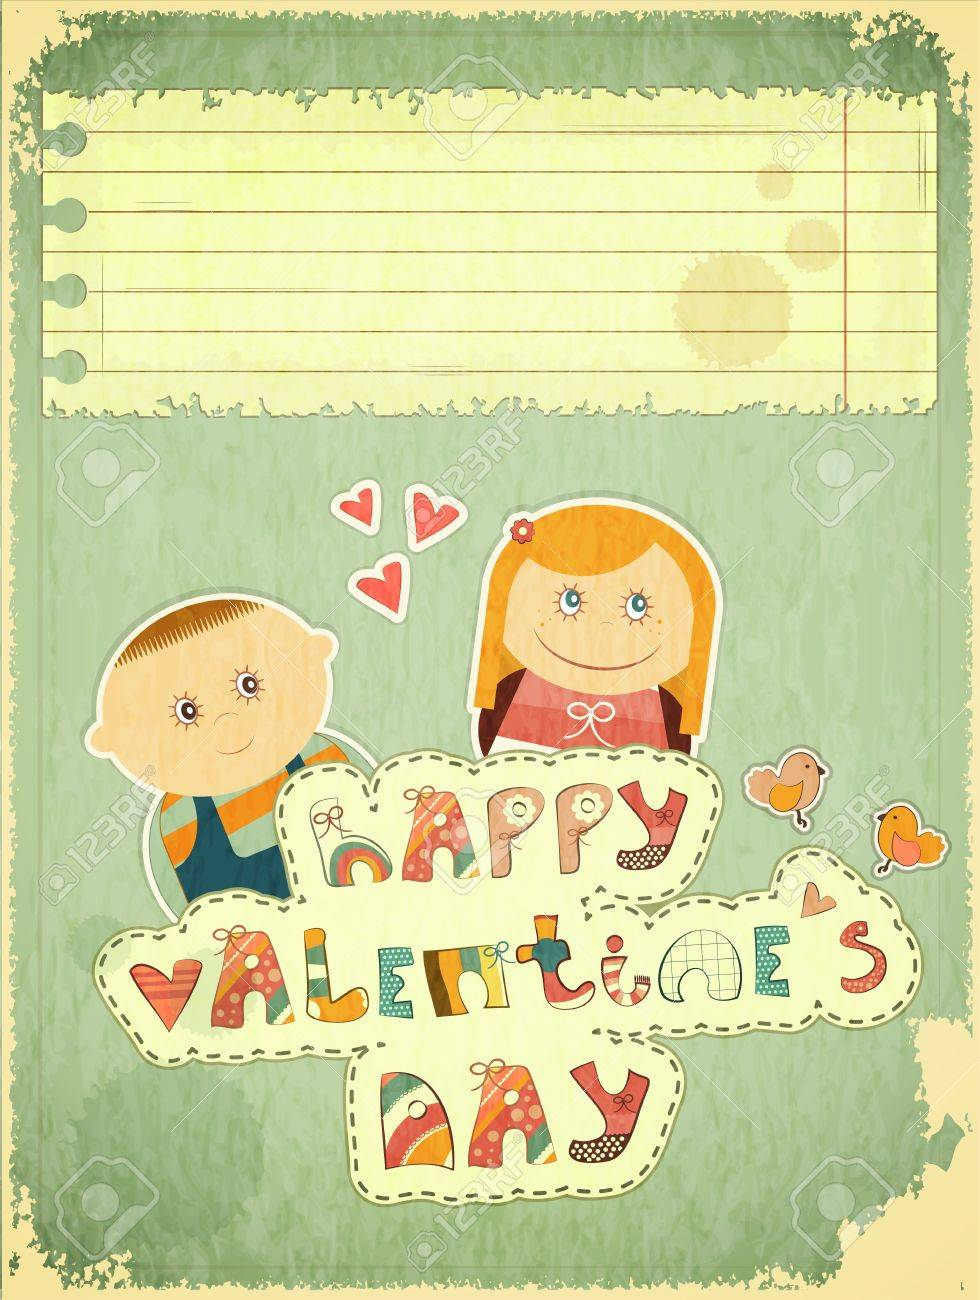 Vintage Design Valentines Day Card With Cartoon Boy And Girl – Boy Valentines Day Cards